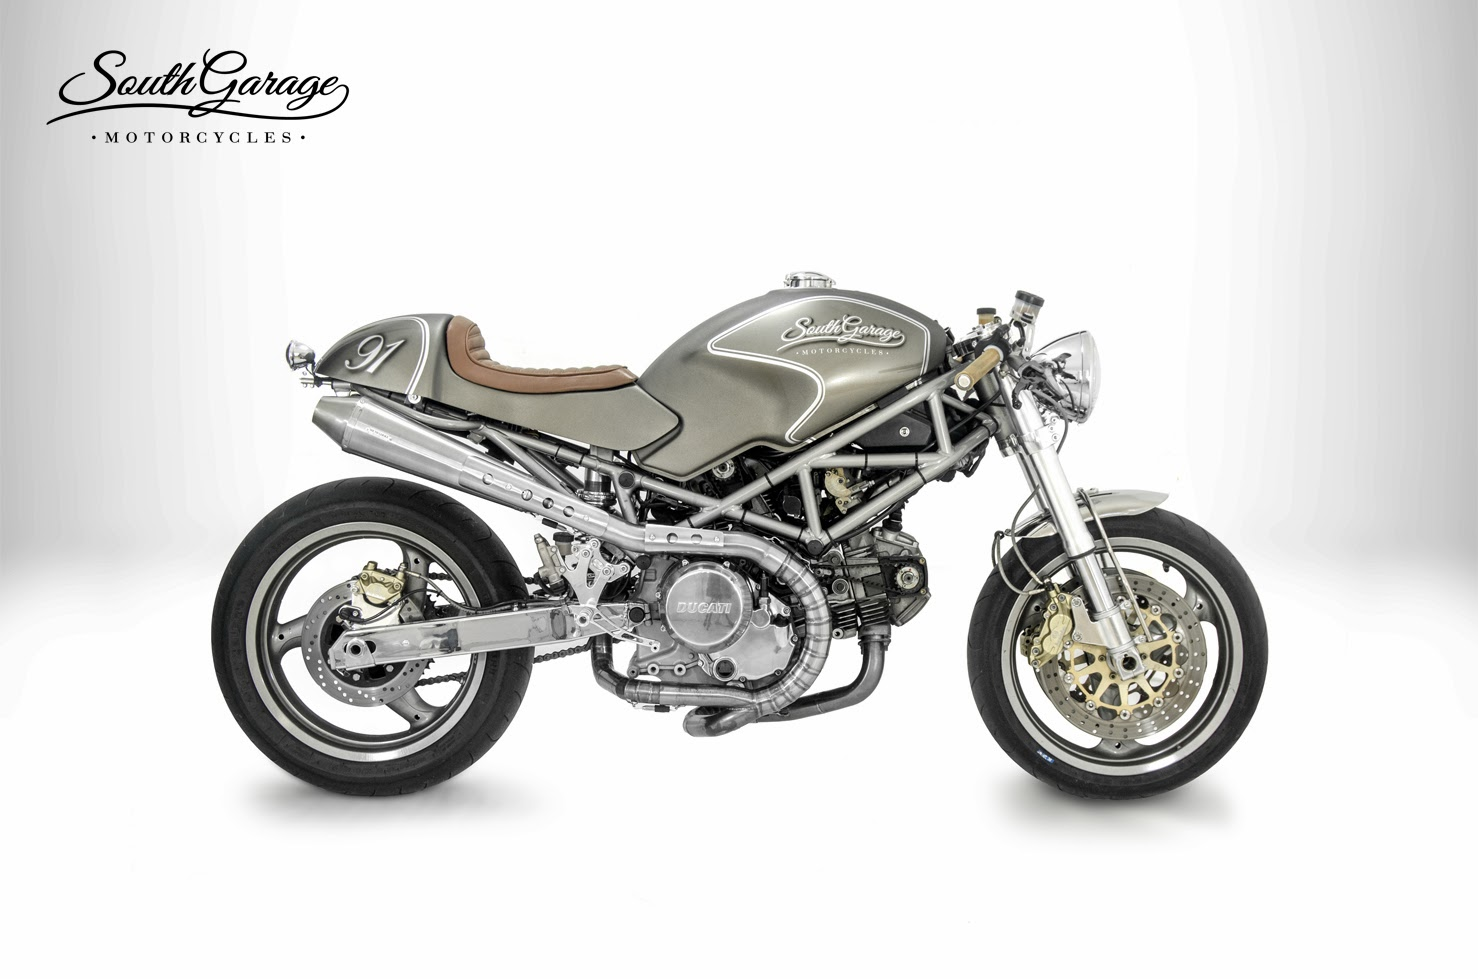 Racing Caf U00e8  Ducati  U0026quot Losa U0026quot  By South Garage Motorcycles